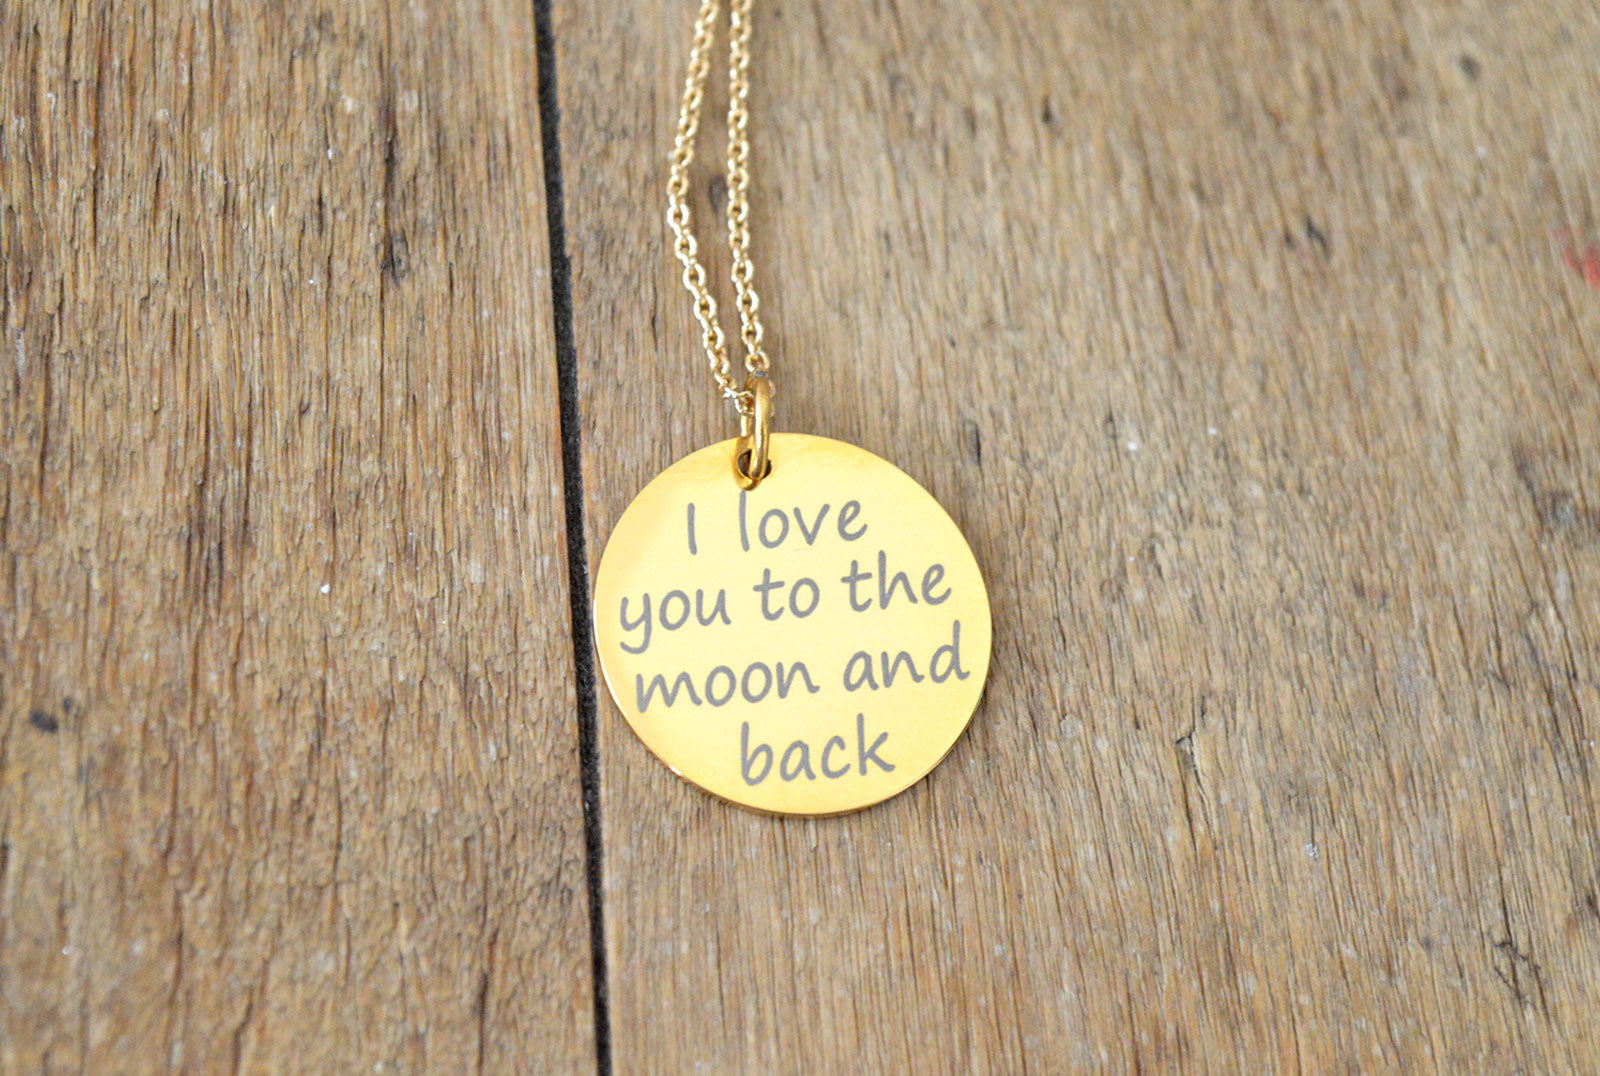 Gold Plated Dainty Necklace - Love you to the moon and back